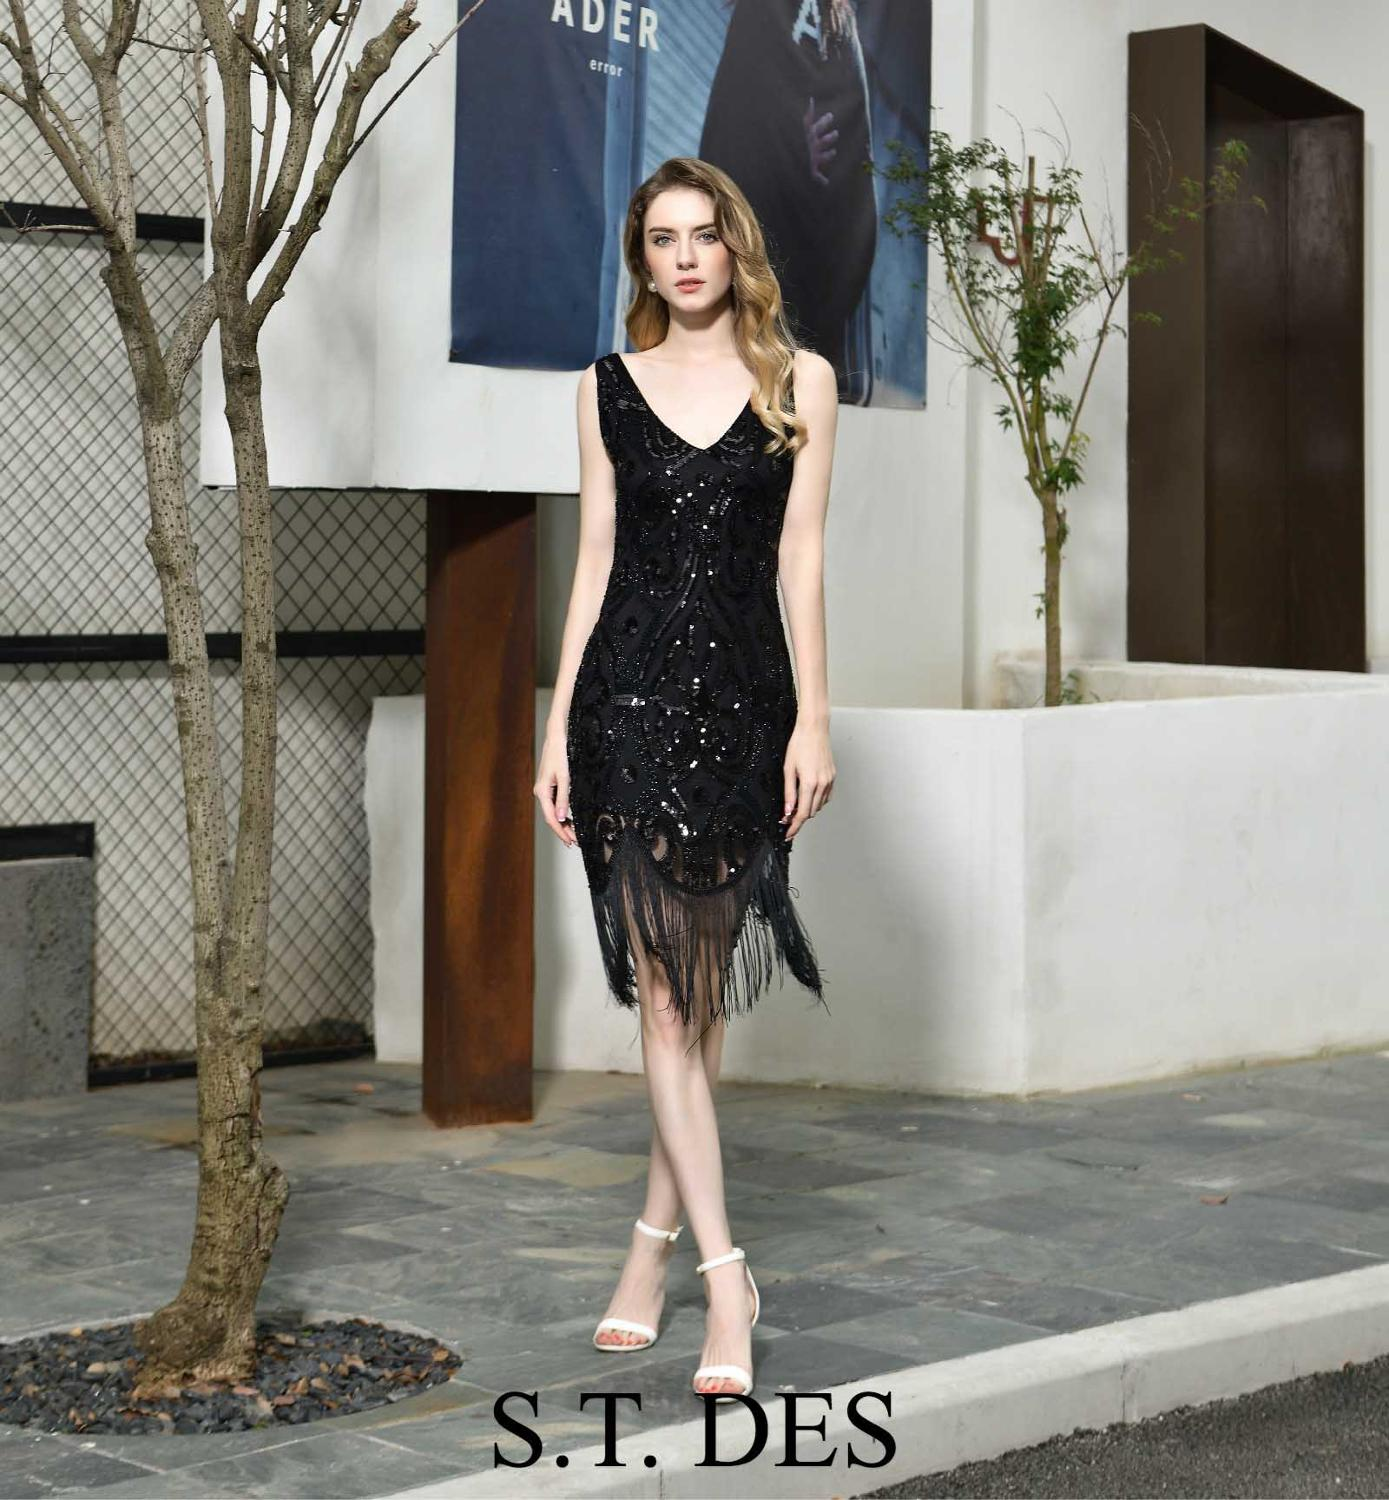 S.T.DES Evening Dress 2020 New Arrival Beading V-Neck Black Sleeveless Designer Knee Length Party Dress Dinner Gowns